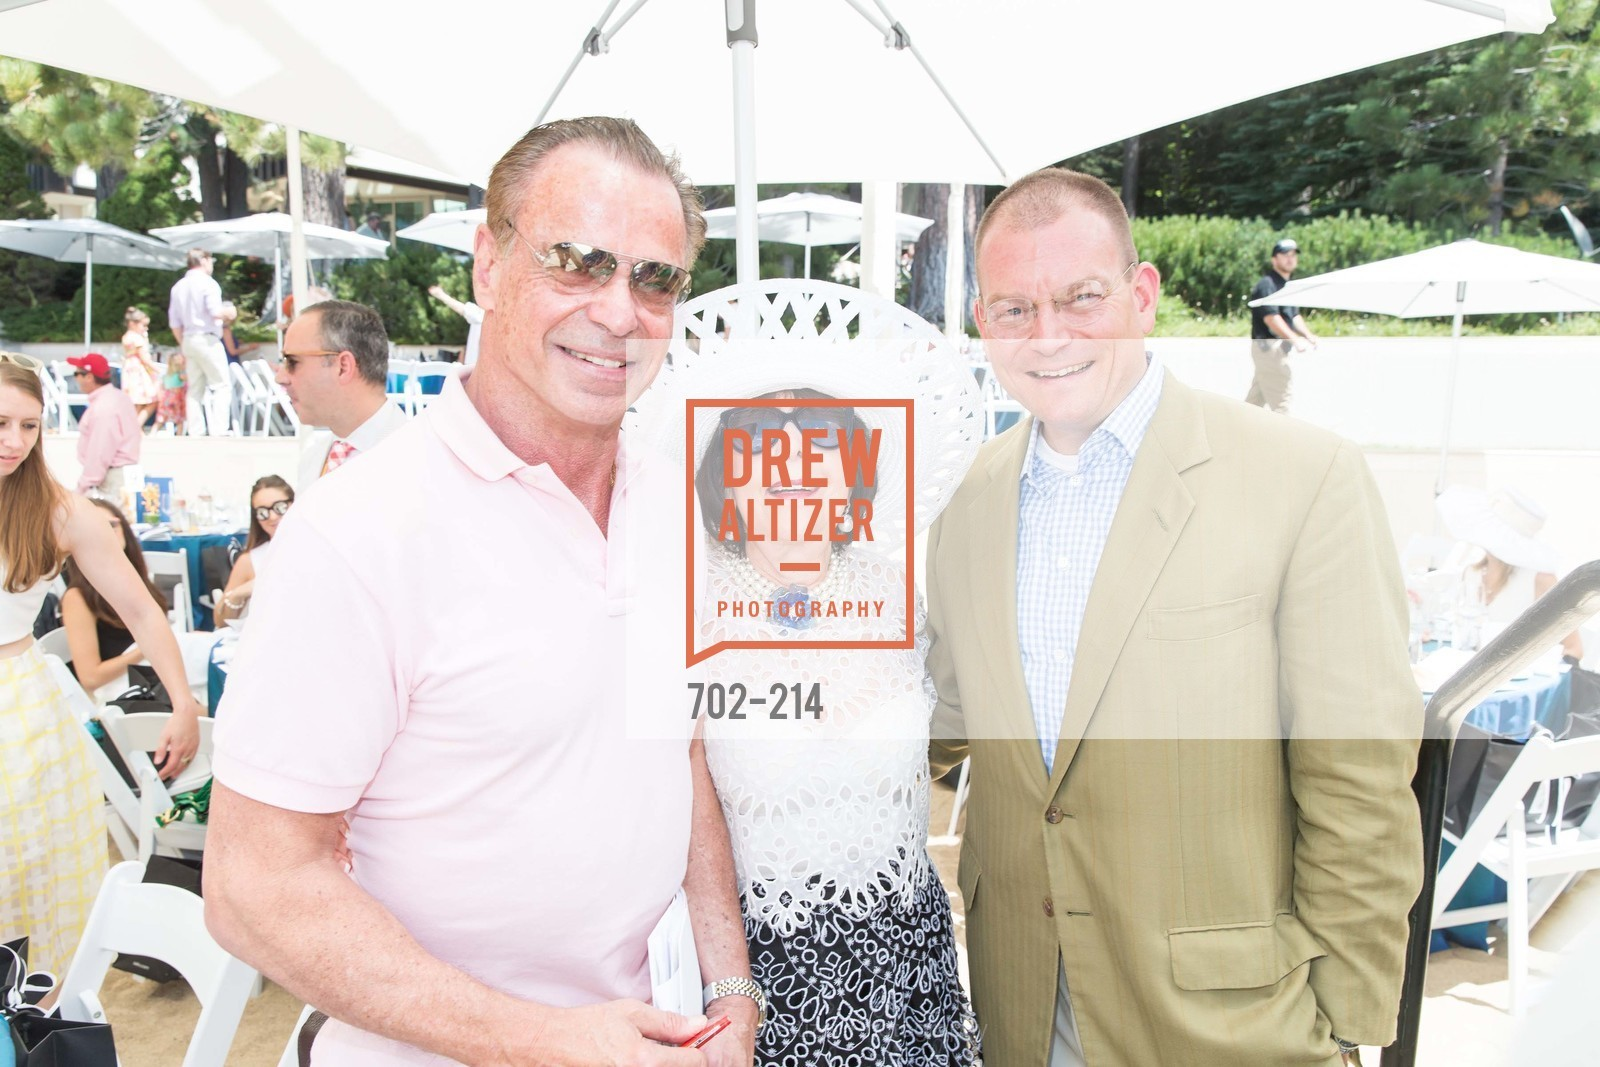 Boaz Mazor, Tyril Seligman, Alex Bolen, Saks Fifth Avenue and The League to Save Lake Tahoe Present Fashion on the Lake, Private Residence, August 1st, 2015